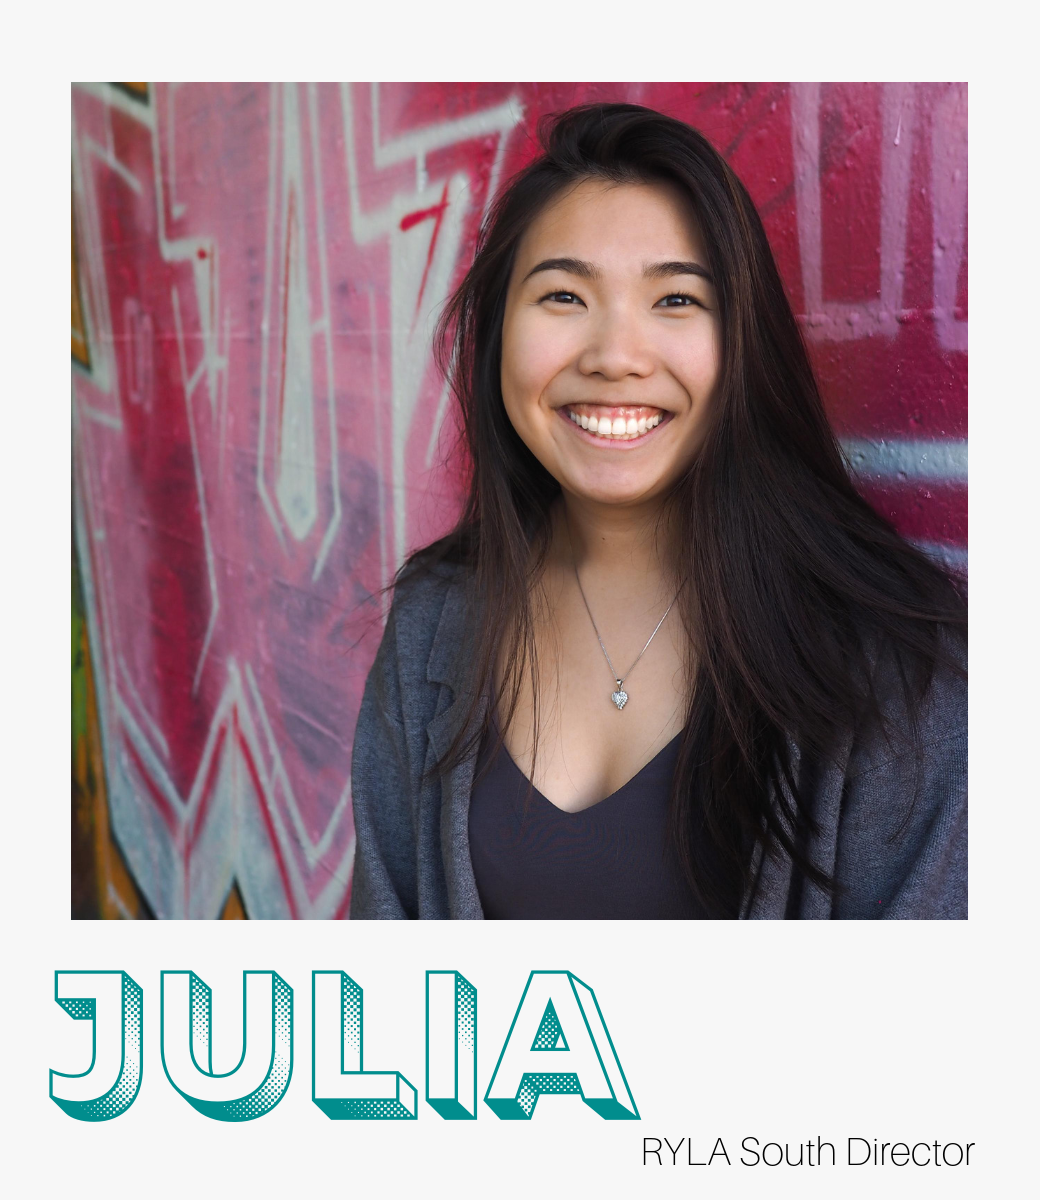 Julia - RYLA South Director